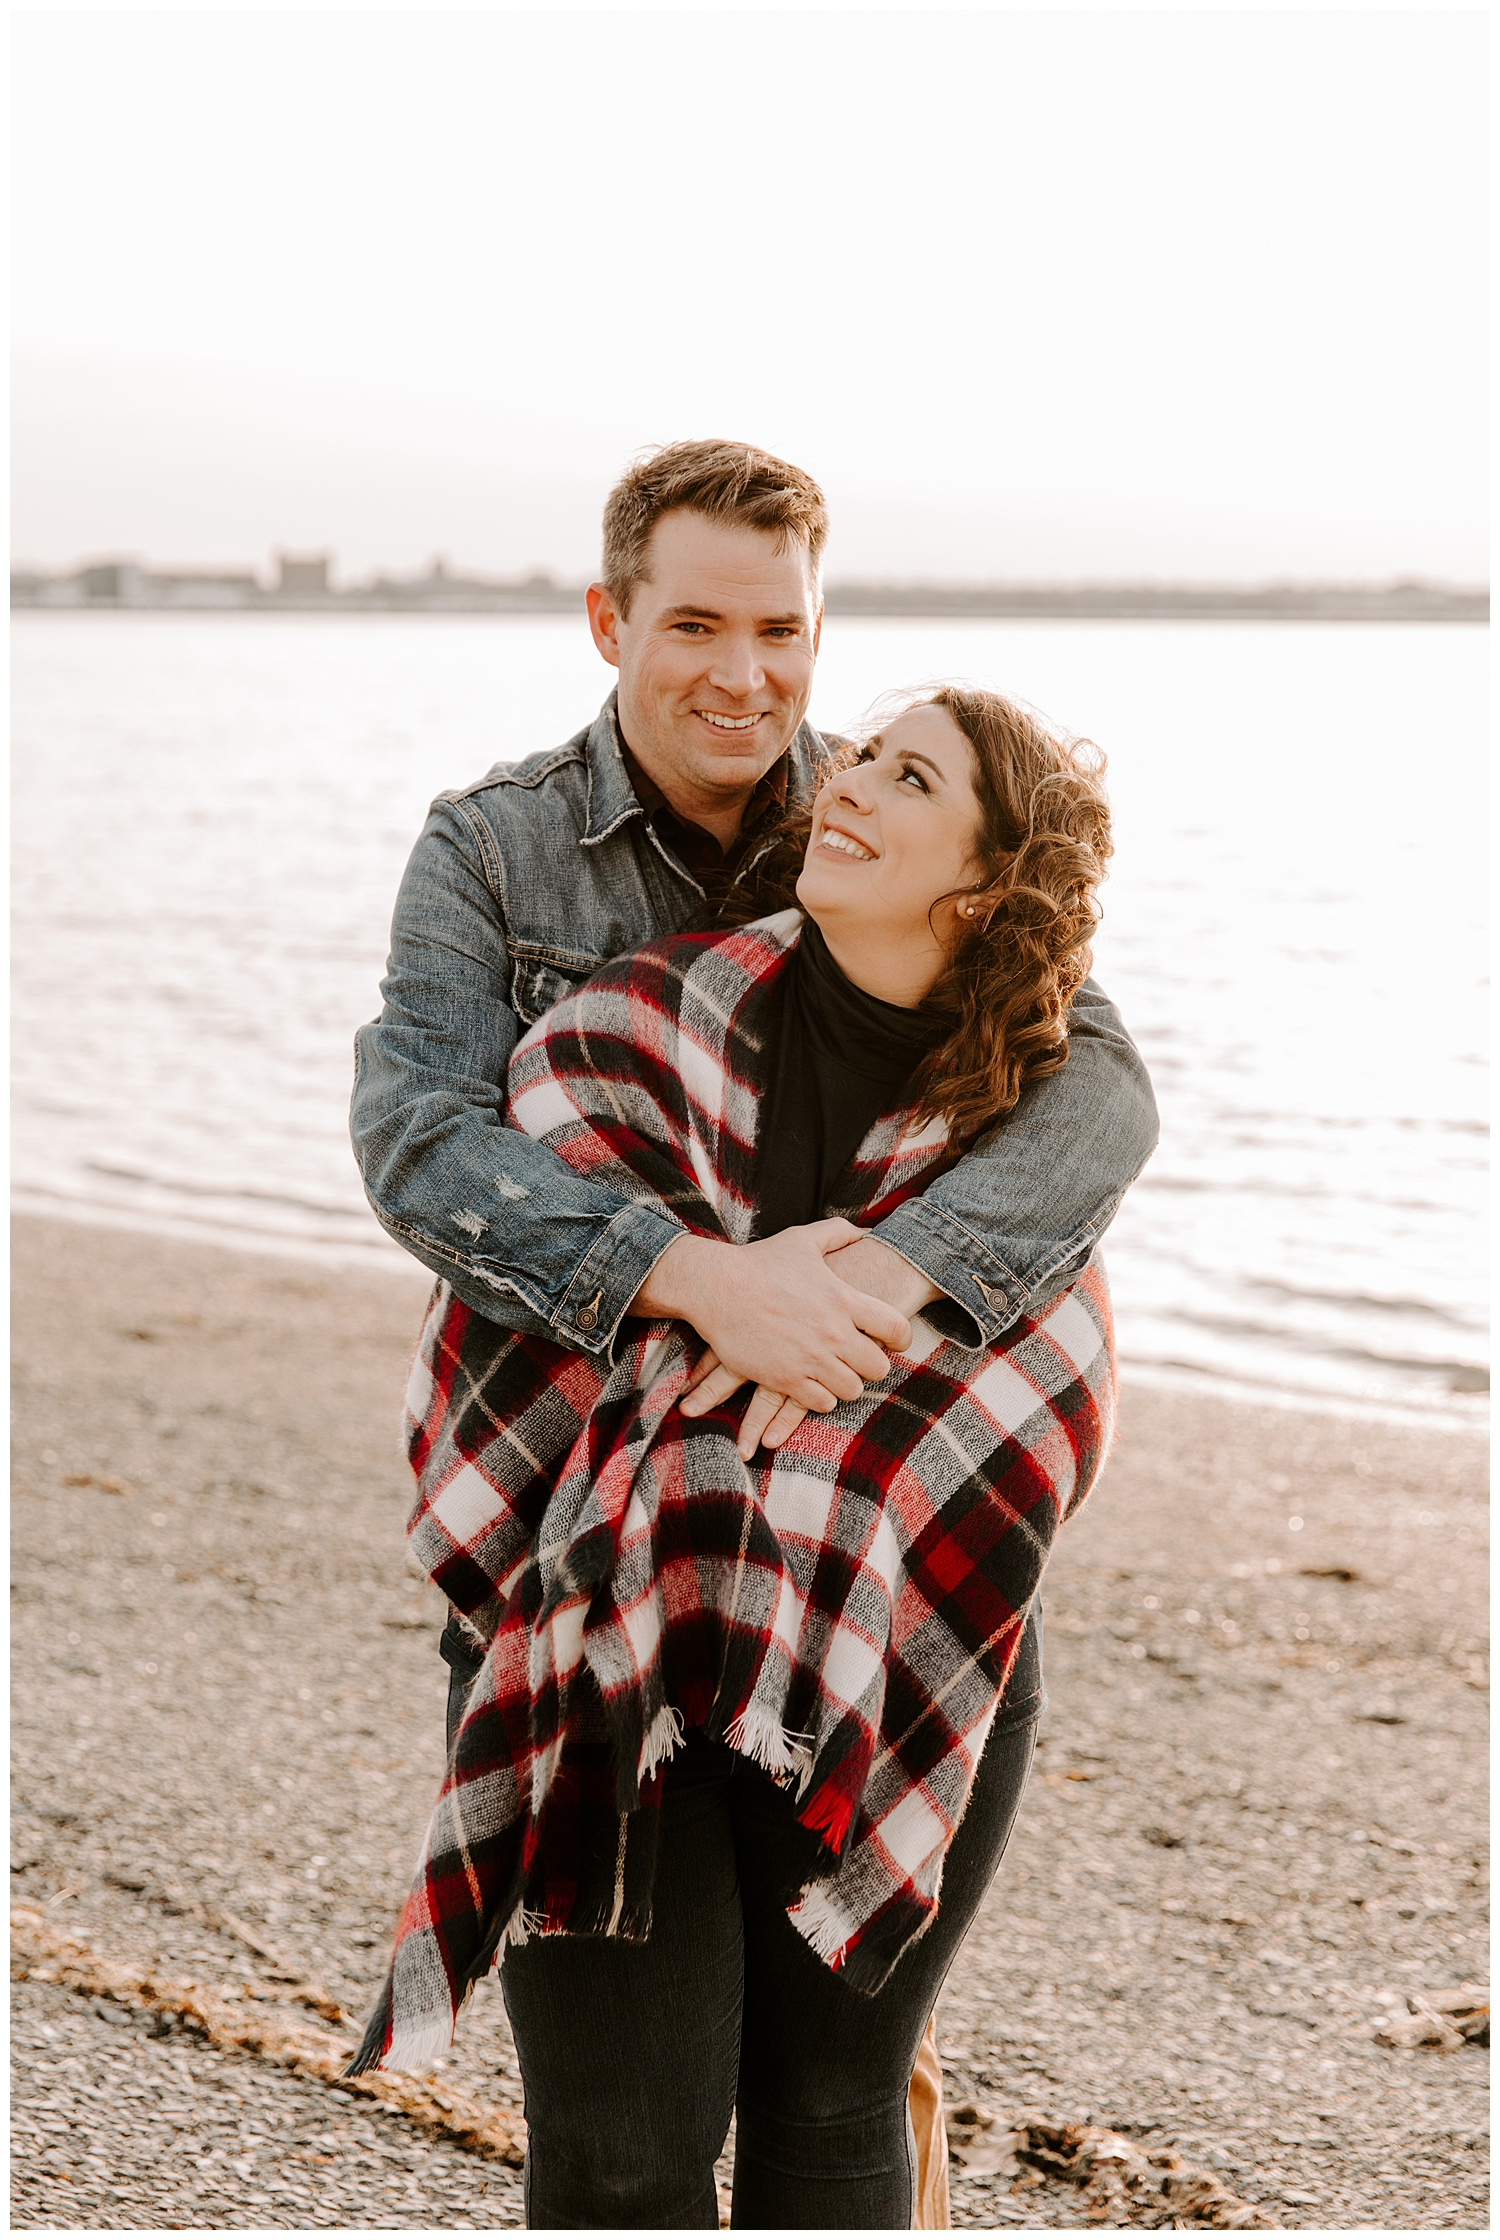 kevin-danielle-snow-winter-engagement-session-castle-island-boston05.jpg